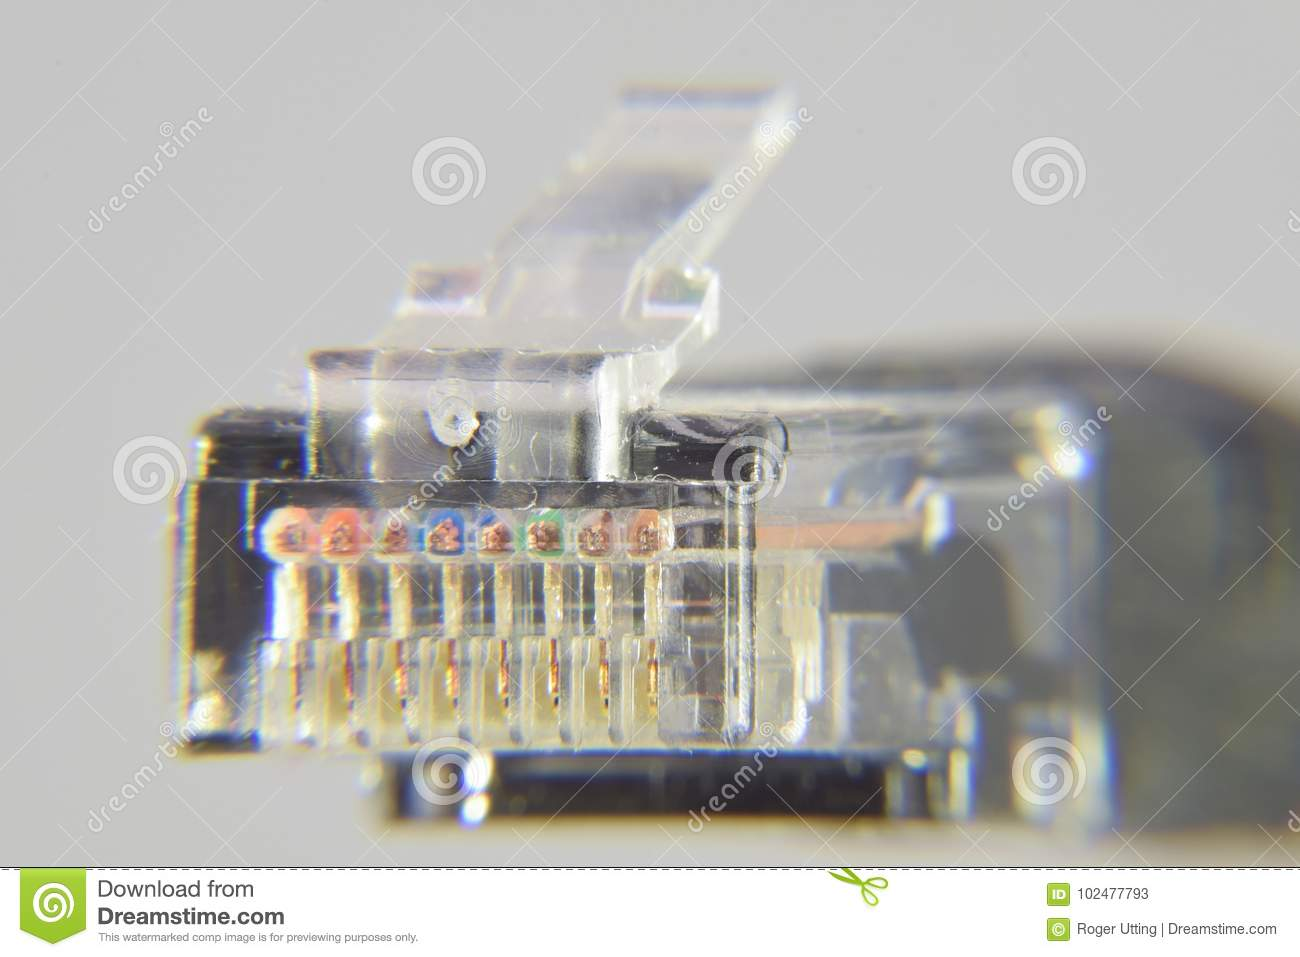 hight resolution of the rj45 plug on the end of an ethernet cable